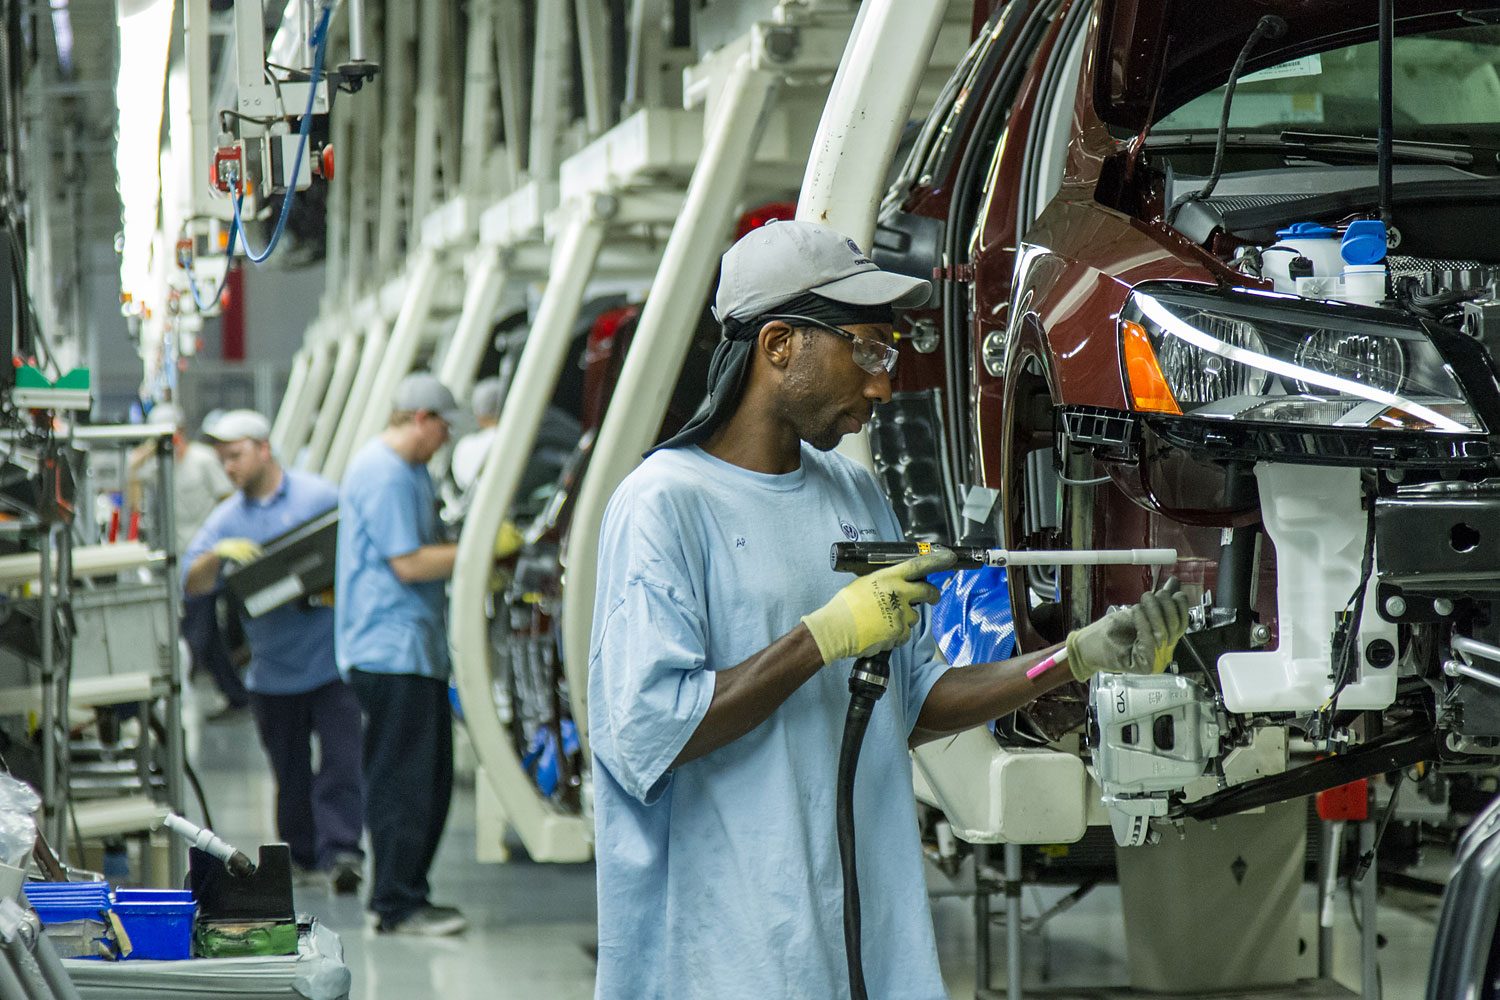 In this June 12, 2013, photo, workers assemble Volkswagen Passat sedans at the German automaker's plant in Chattanooga, Tenn.